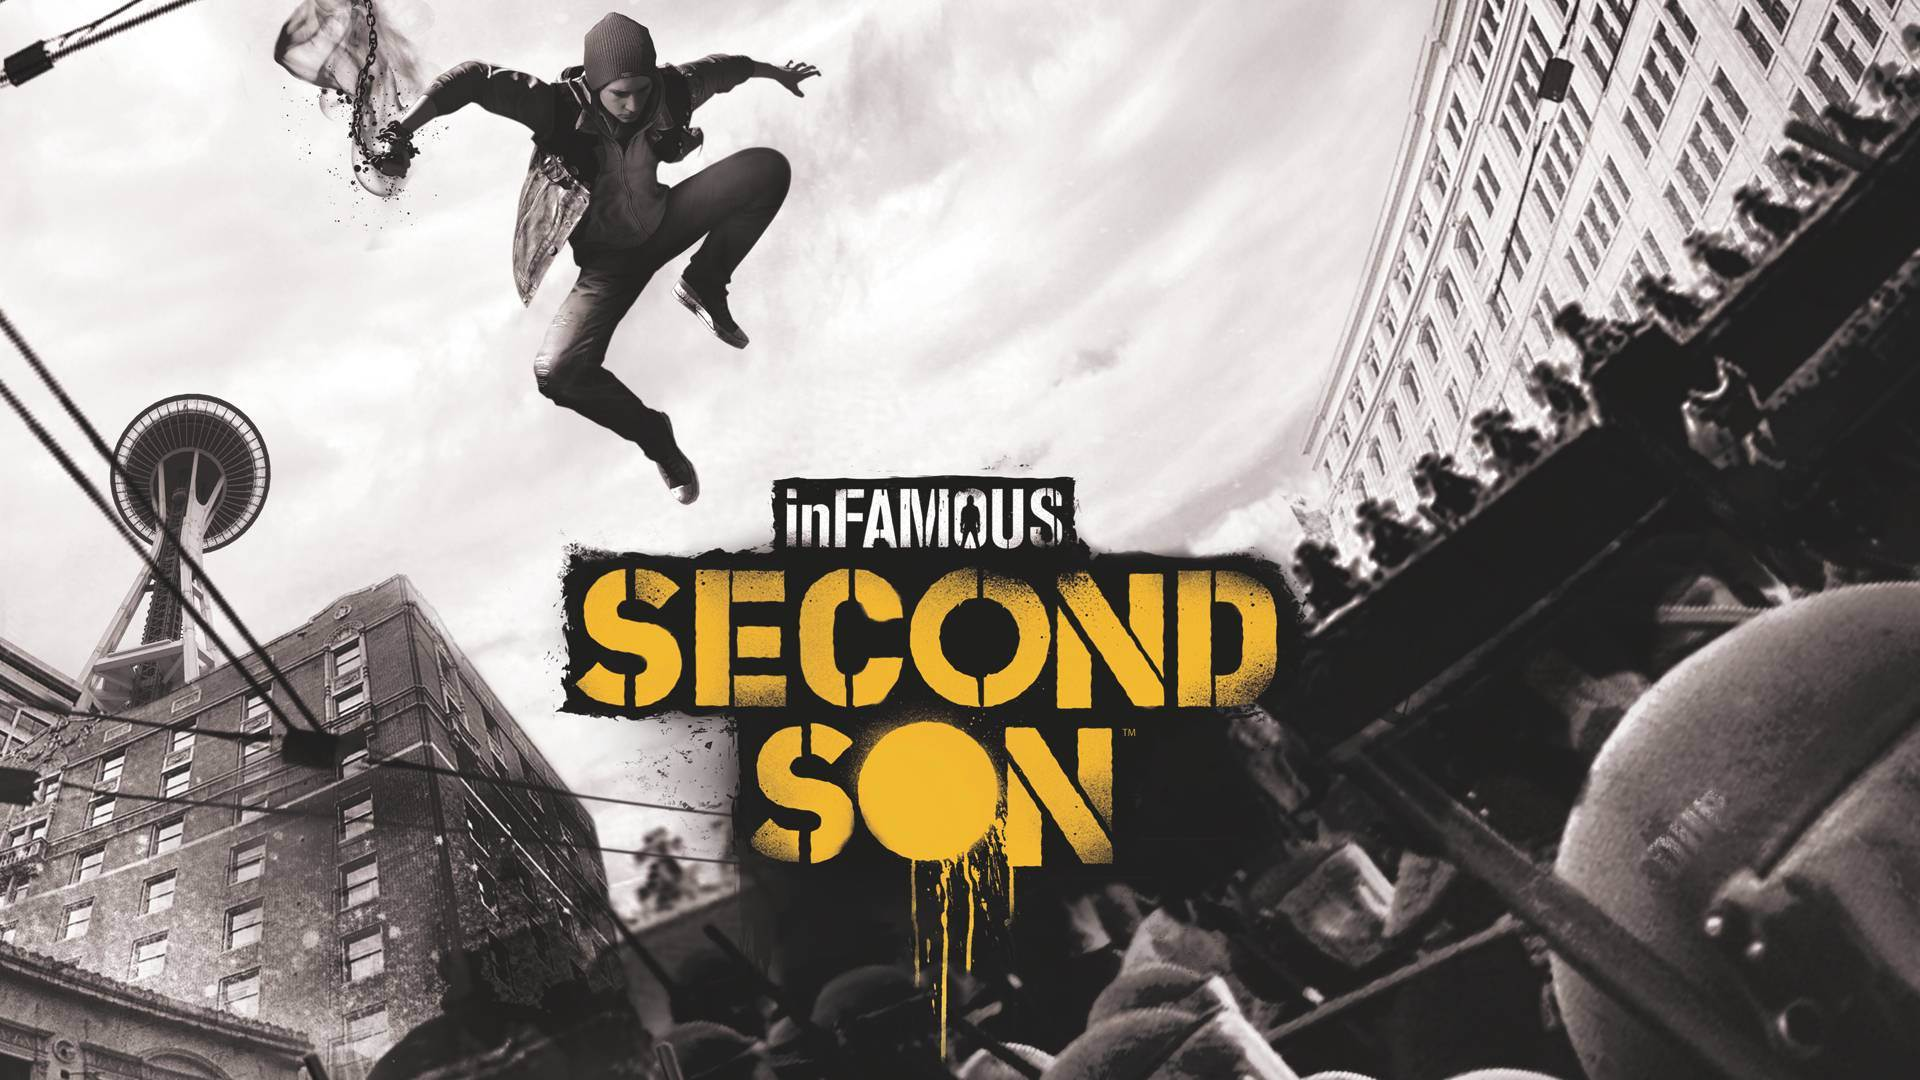 infamous second son ps4 wallpaper 1080p